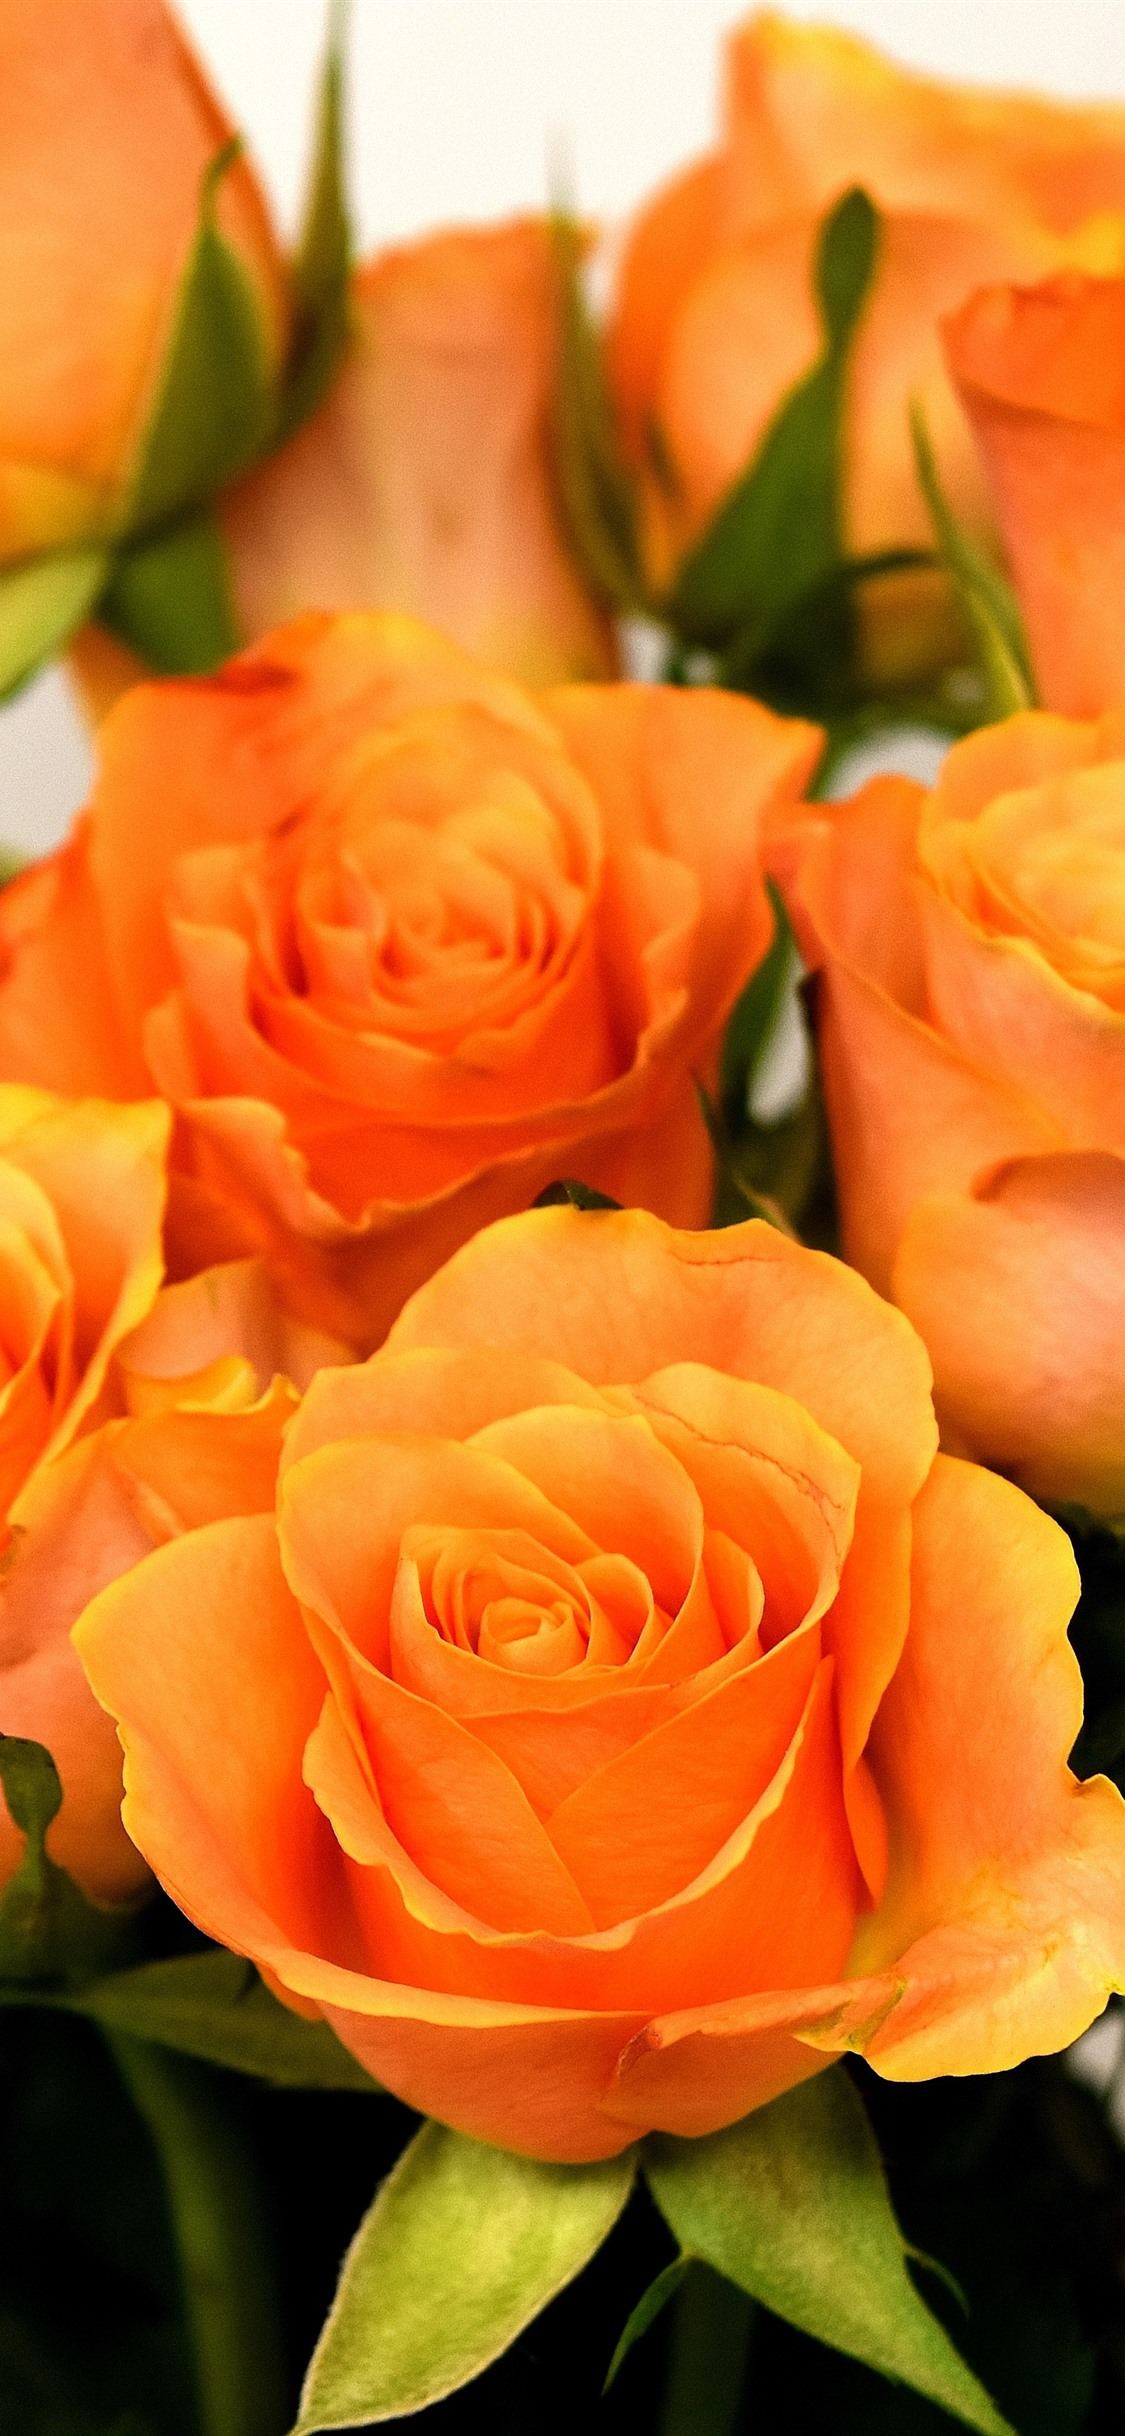 Orange Roses Bouquet White Background 1242x2688 Iphone 11 Pro Xs Max Wallpaper Background Picture Image